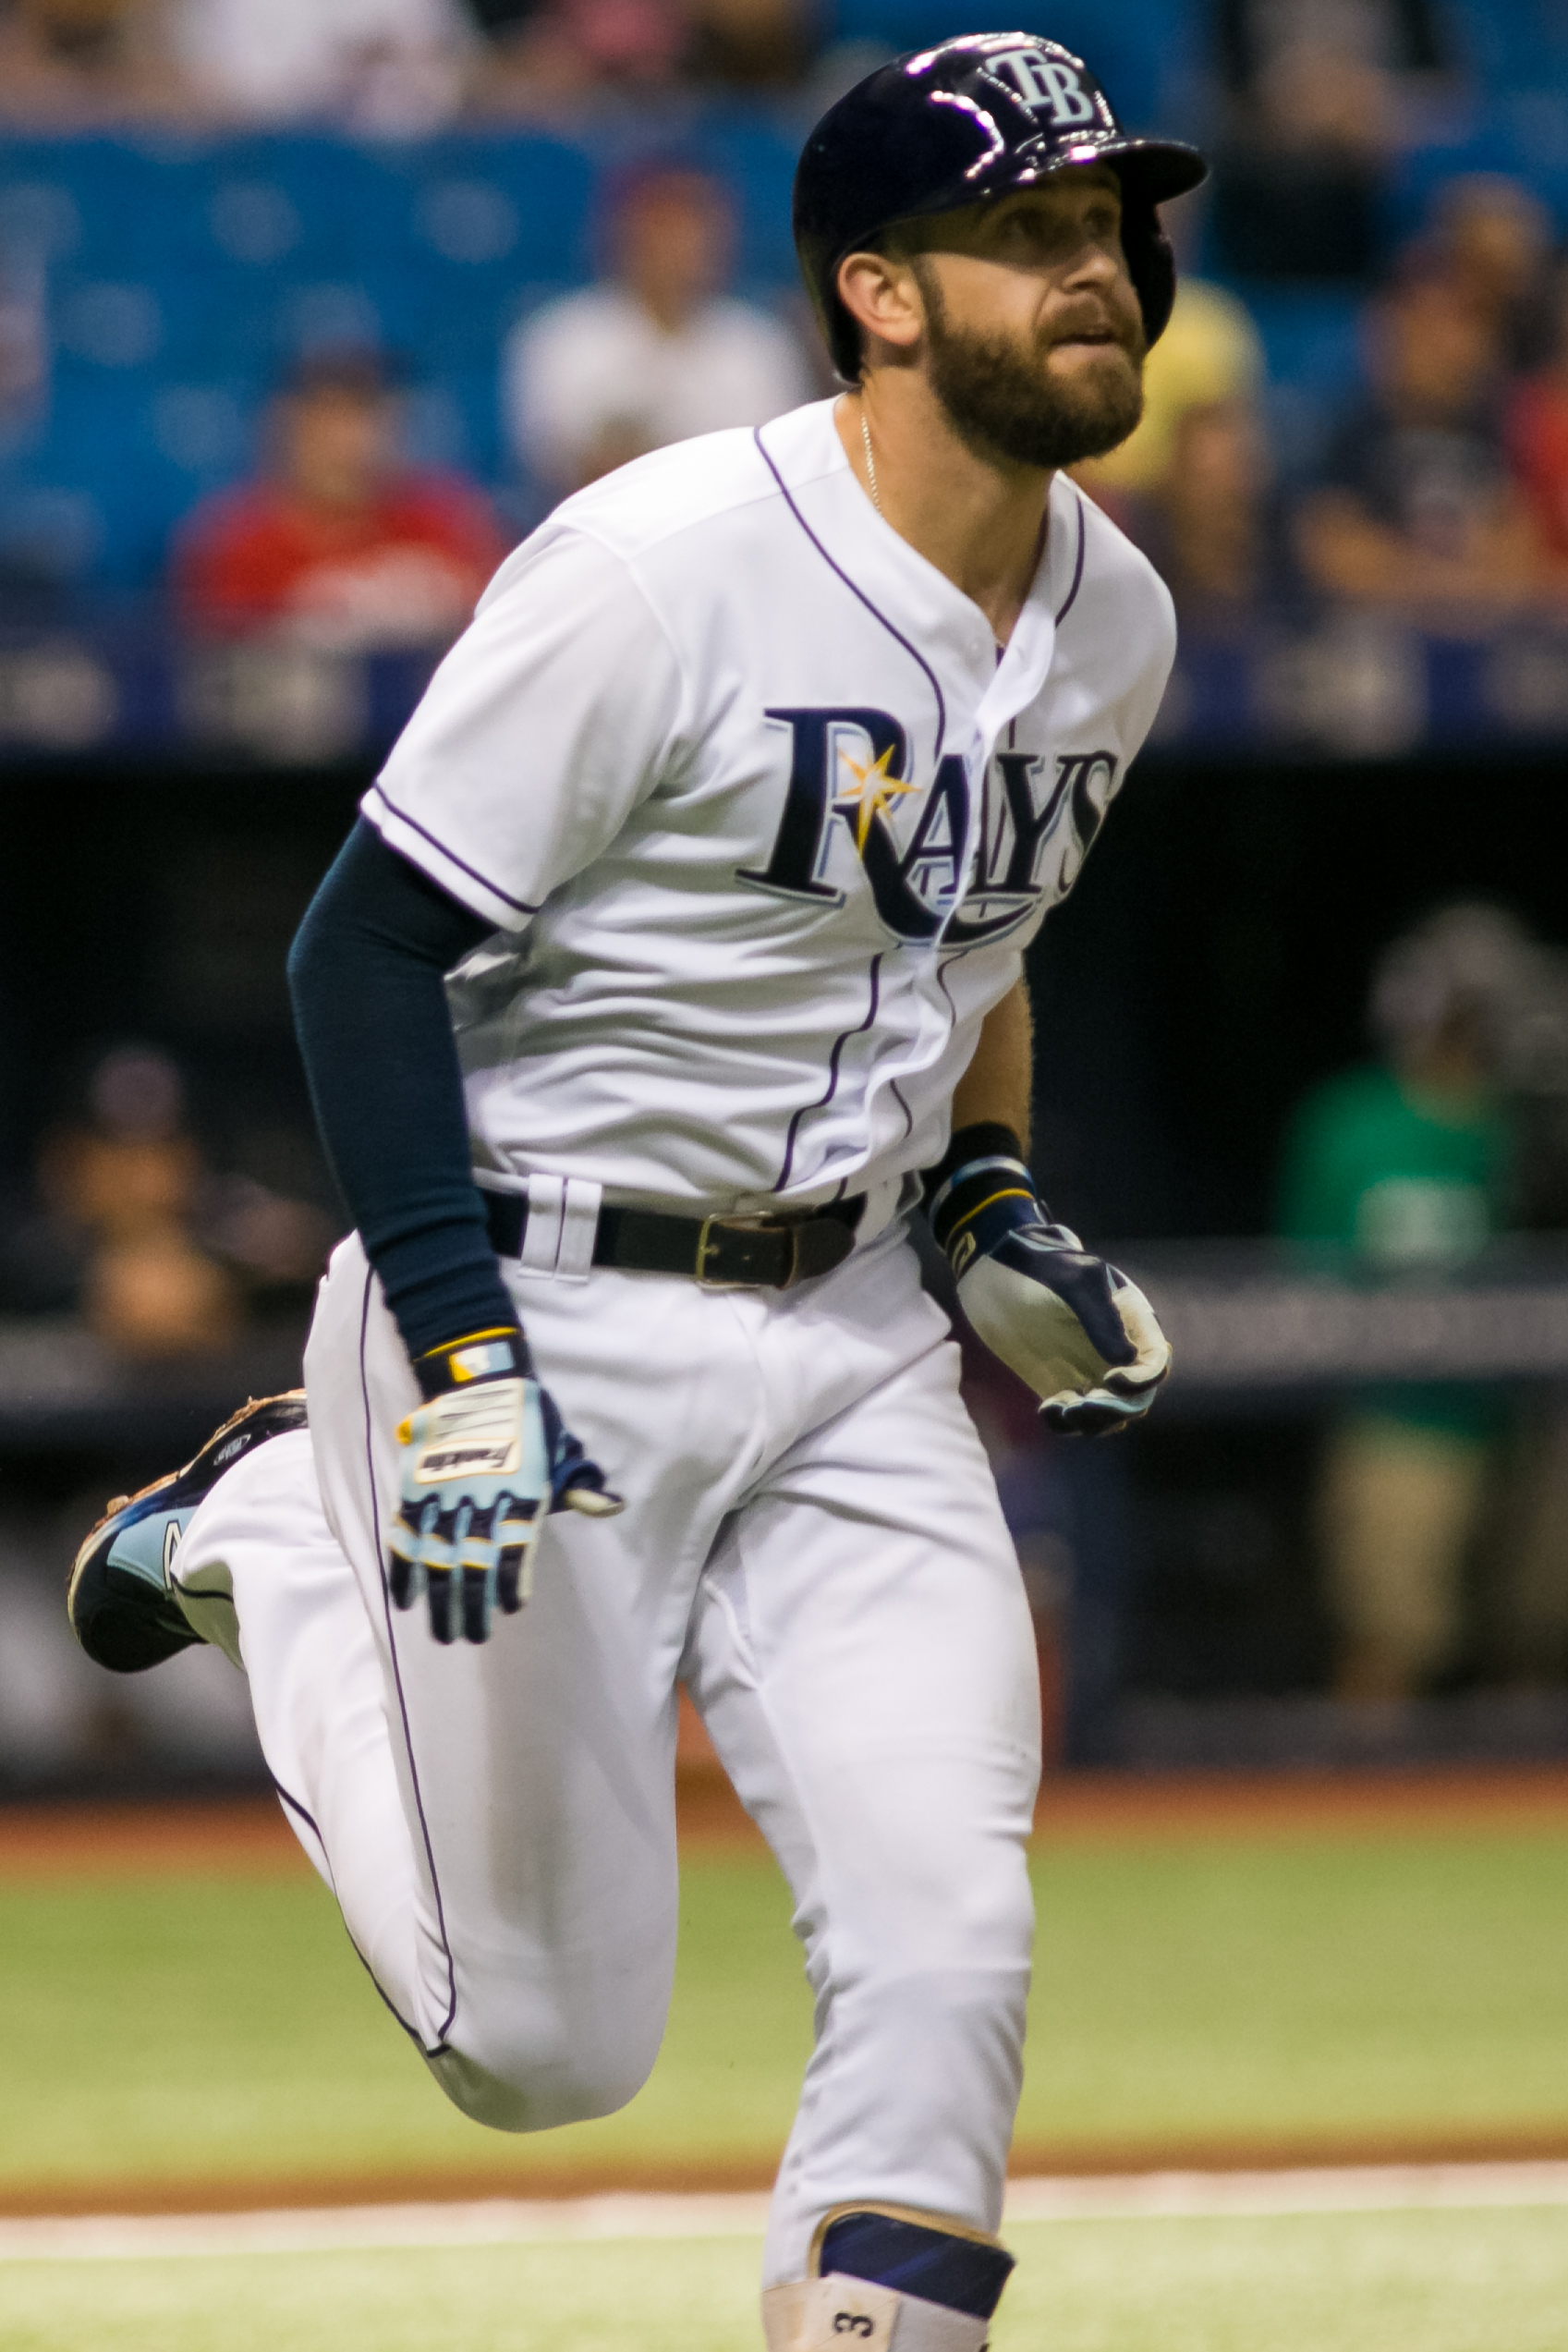 Longoria grew up as a Tampa Bay Ray./CARMEN MANDATO